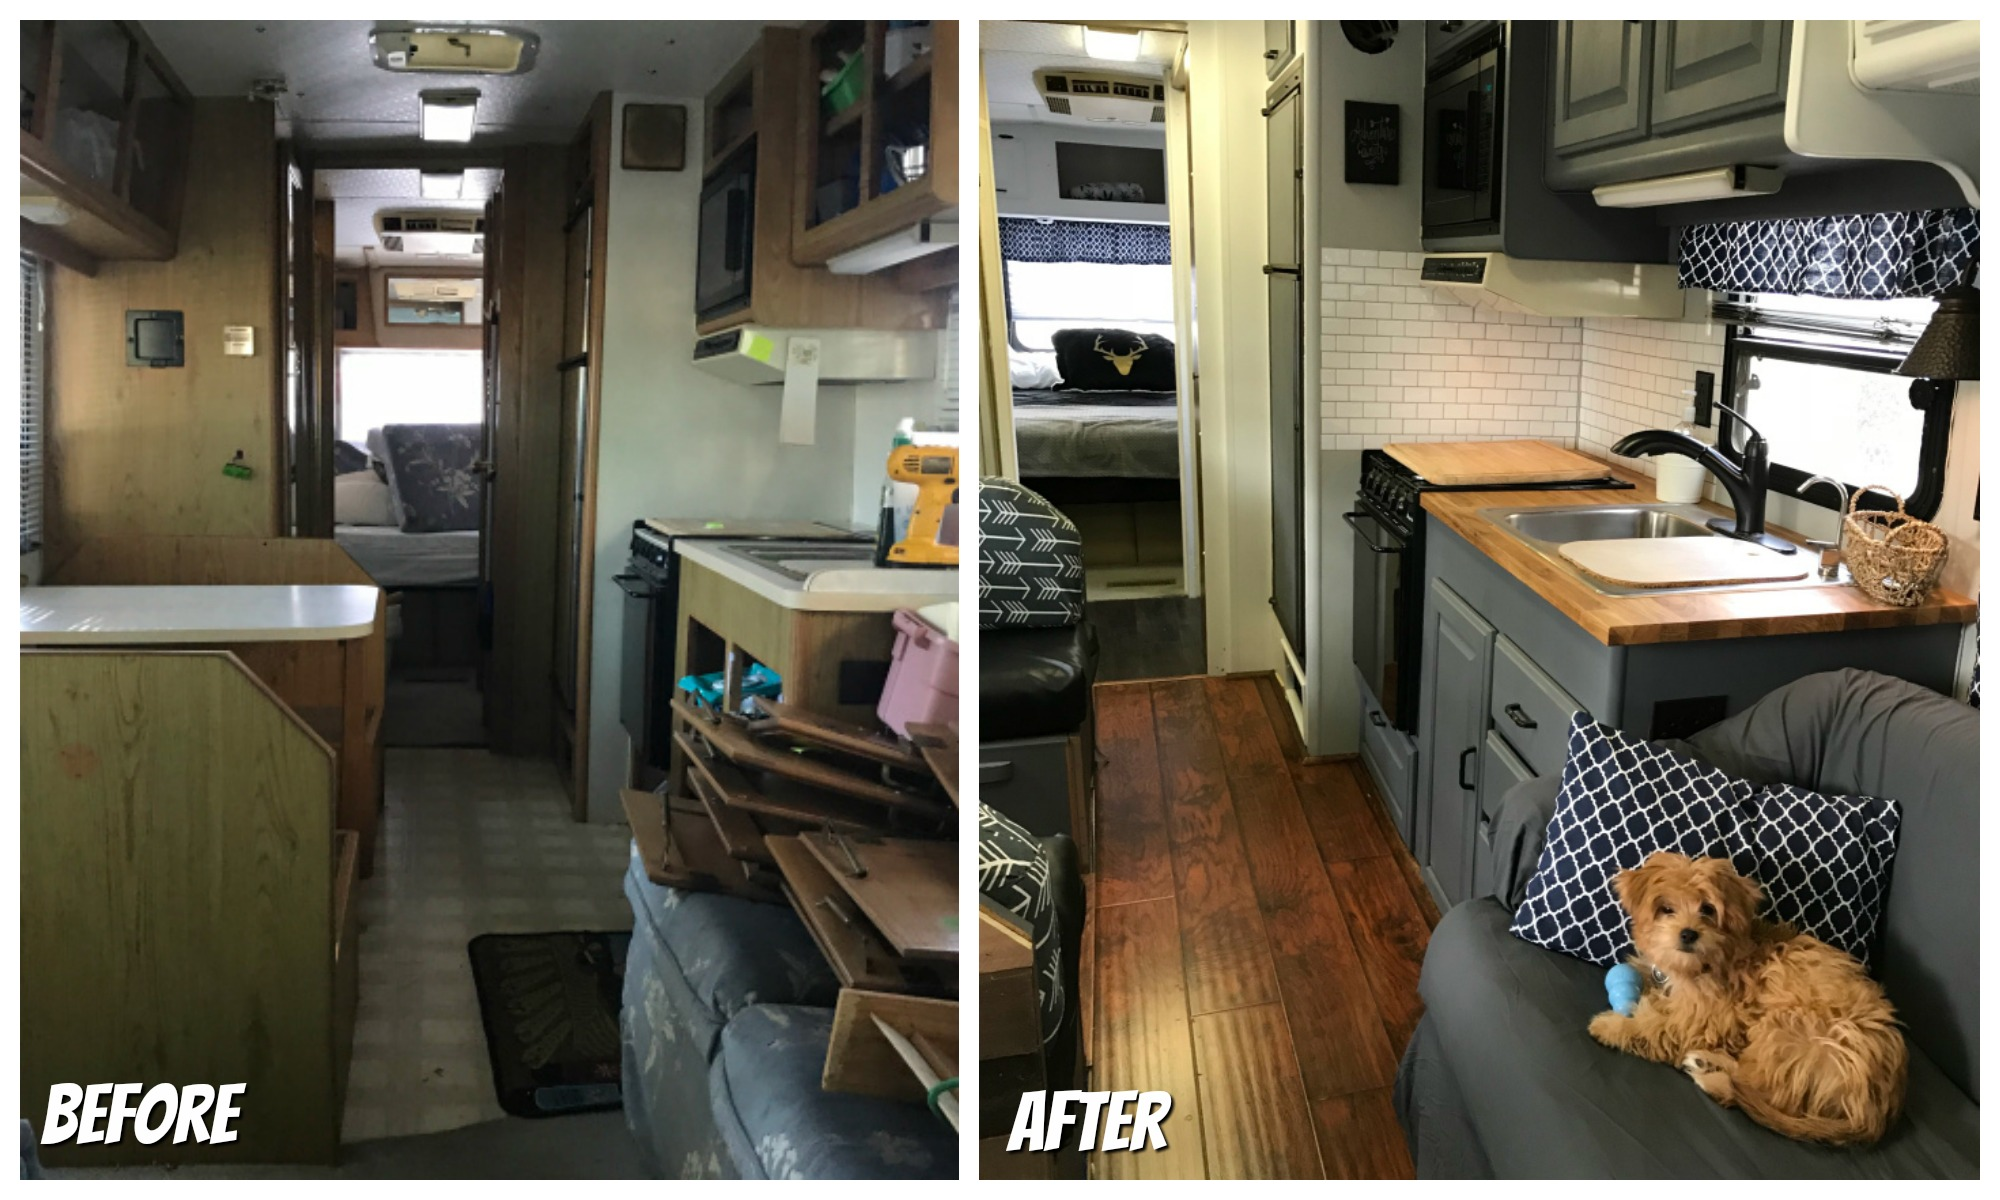 RVObsession.com - RV Renovations | Motorhome Renovations - Whether it's a quick spruce up or a major remodel, an RV renovation can breathe new life into an old motorhome. The New Lighter Life